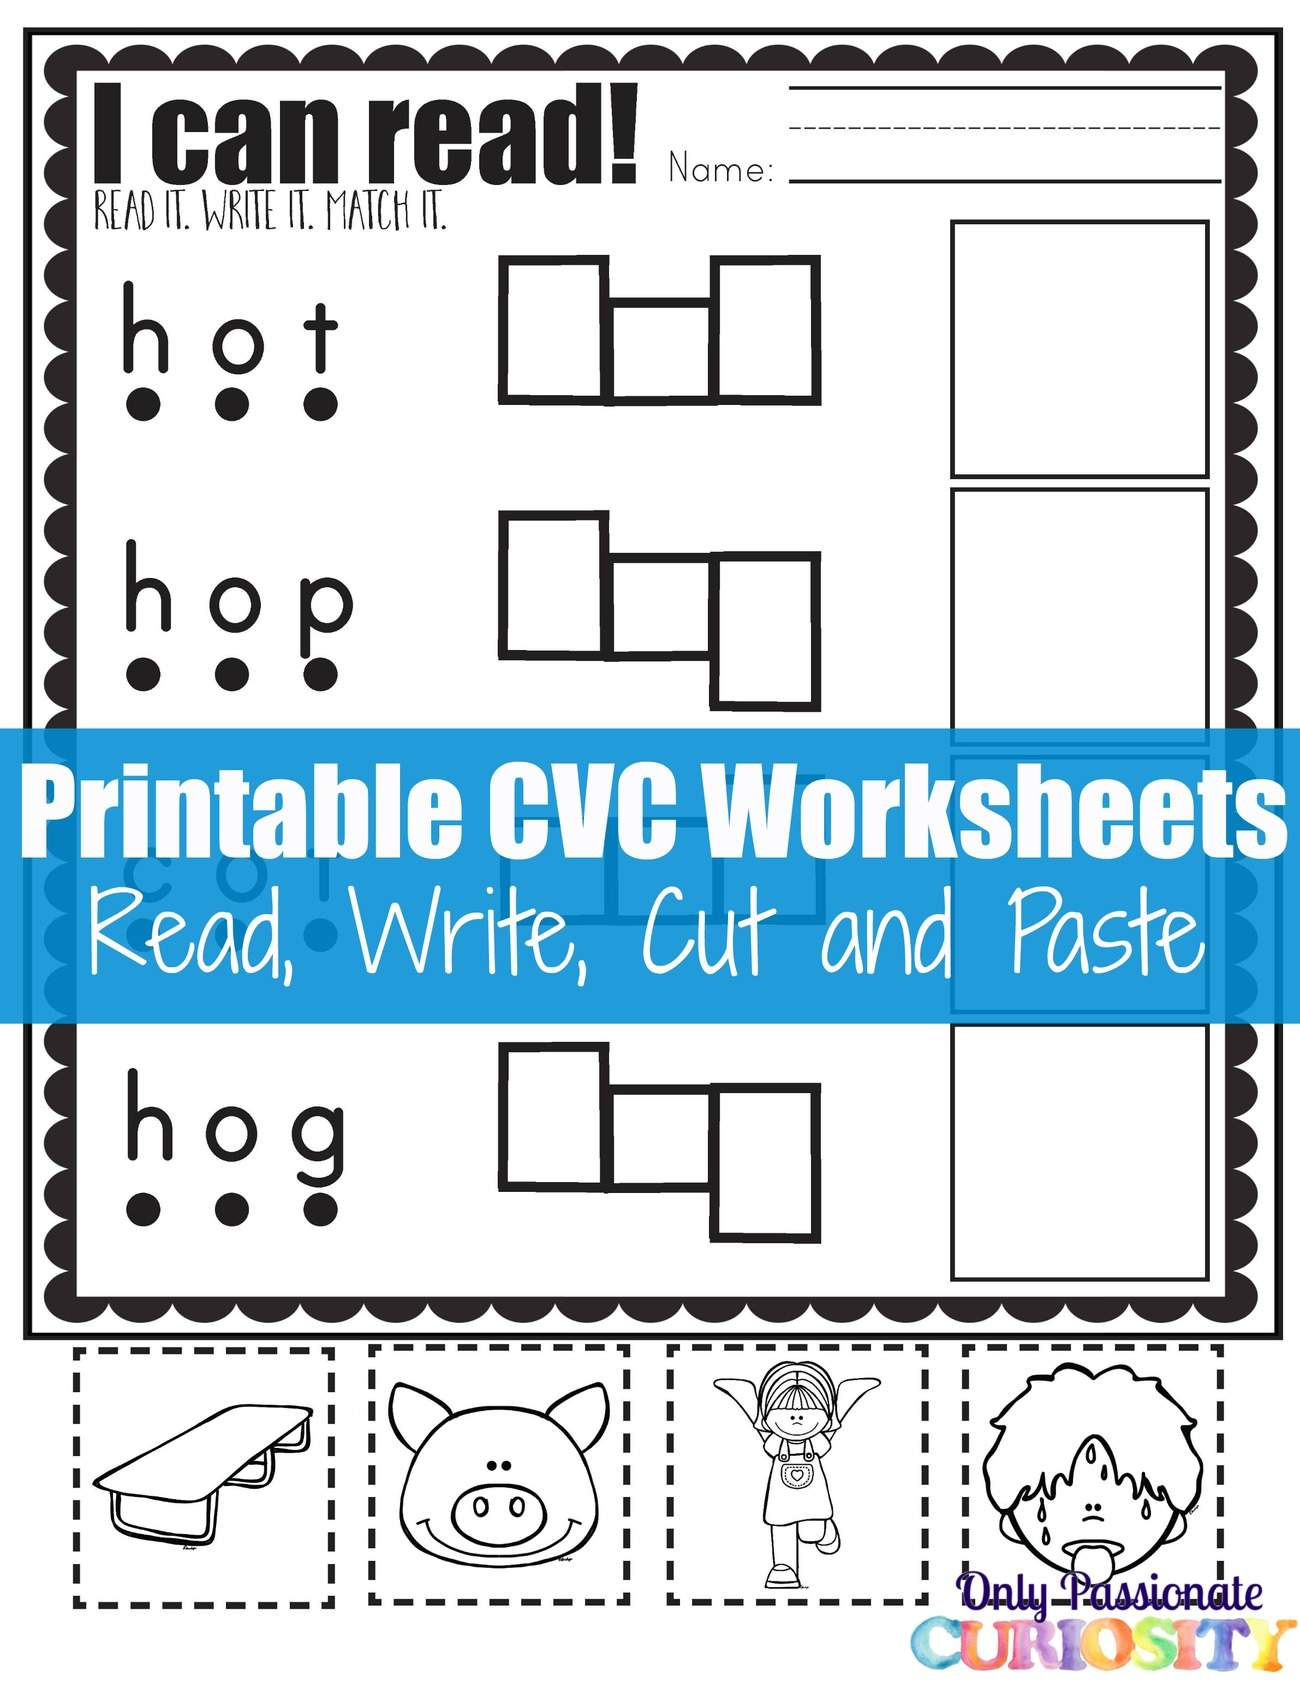 FREE CVC Words Worksheets: No Prep Write Cut and Paste Activity | TpT